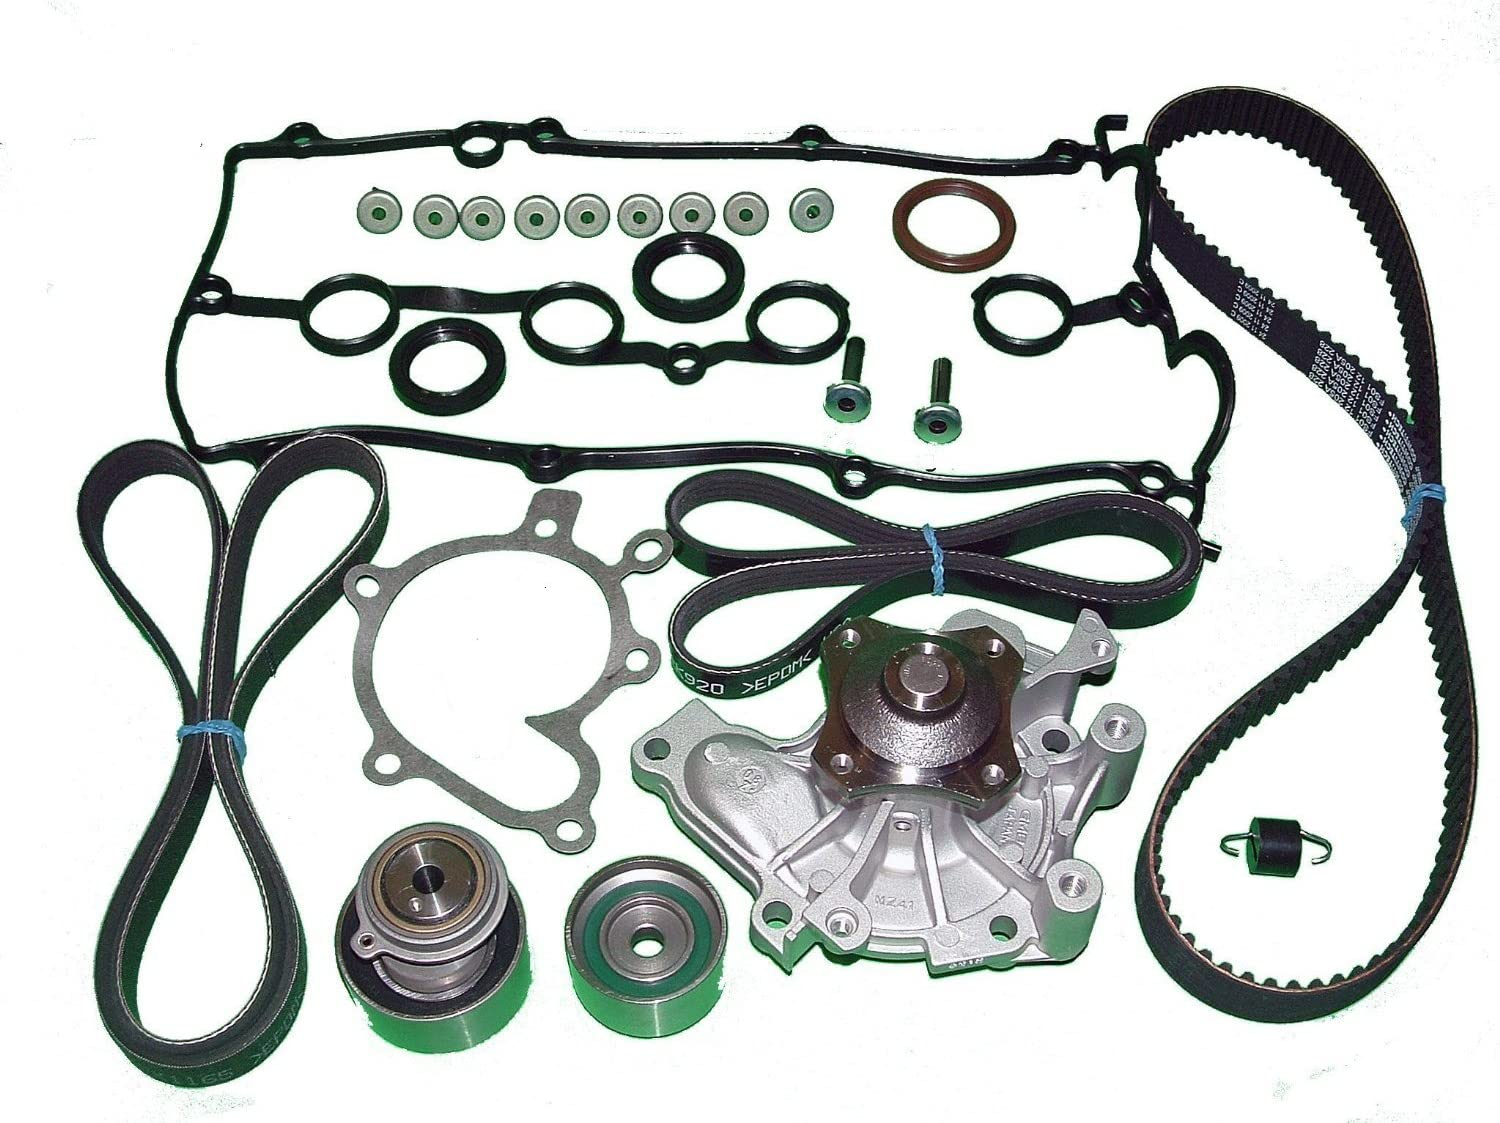 free shipping TBK 35% OFF Timing Belt Kit Replacement for to 2002 Protege 2003 Mazda 5